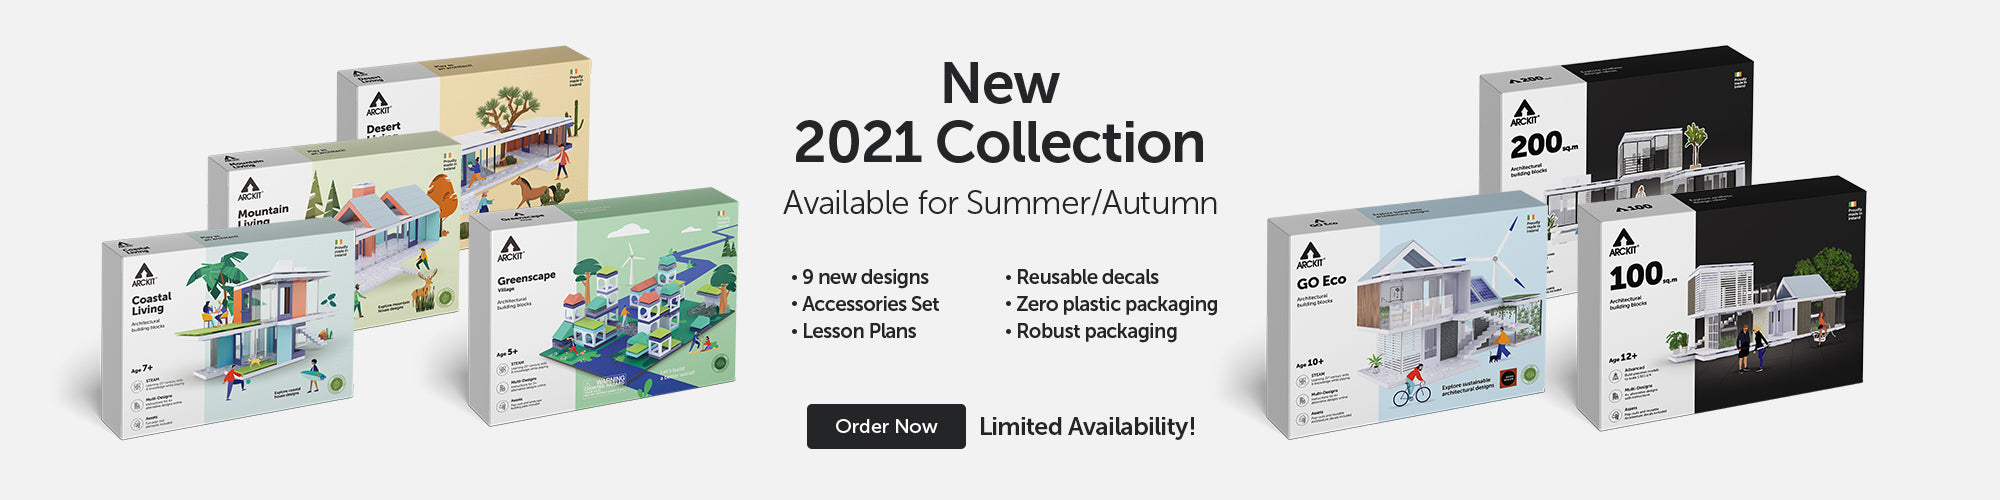 Introducing The All New 2021 Collection of Model Kits from Arckit, Now available for Pre-Order! Architectural model kits trade website